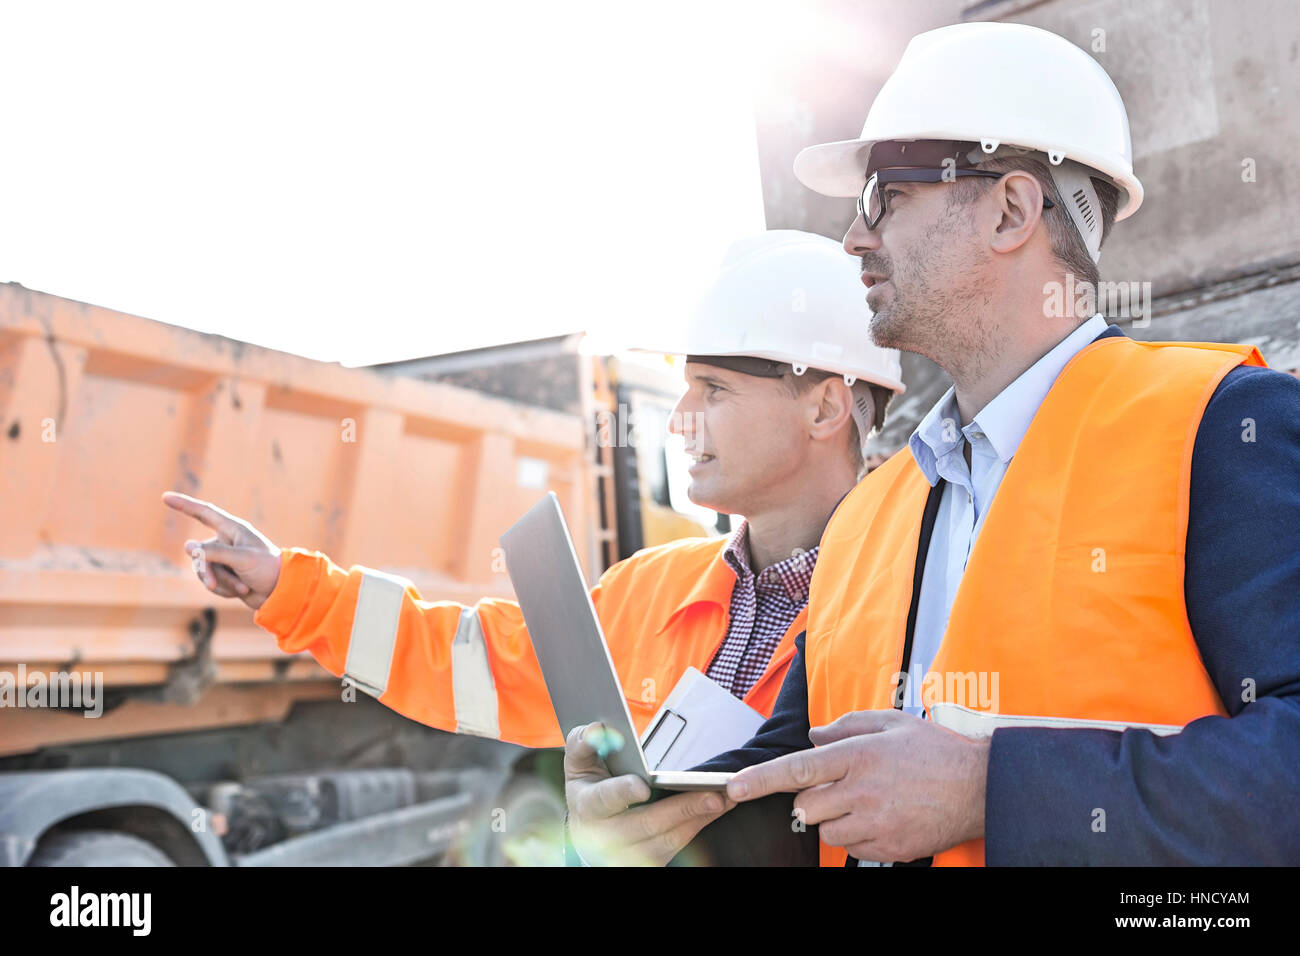 Supervisor showing something to colleague holding laptop at construction site Stock Photo